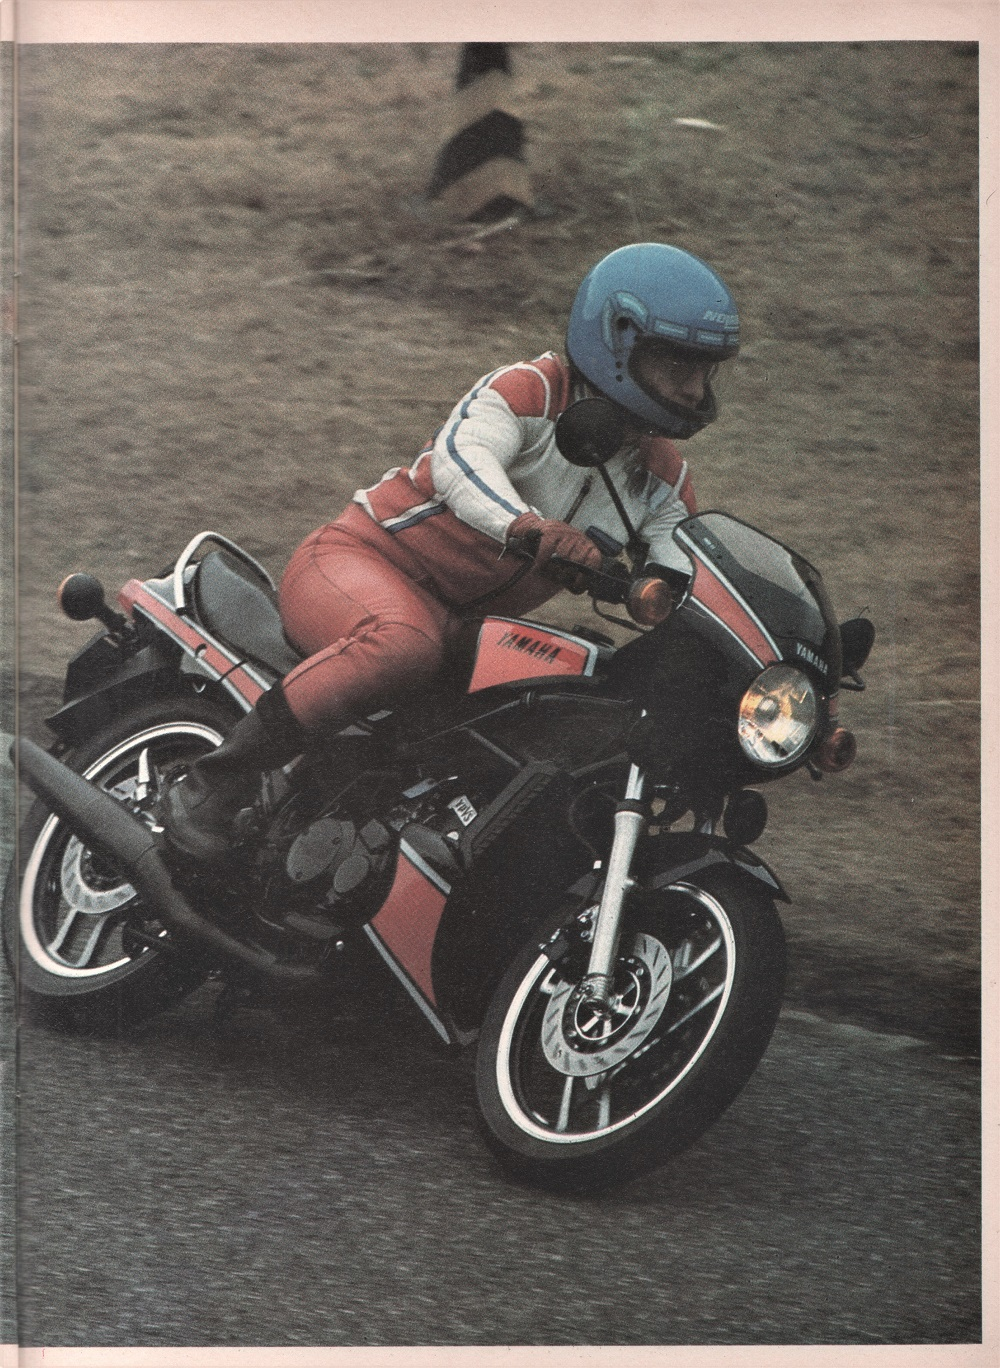 1983 Yamaha RD350LC road test.3.jpg